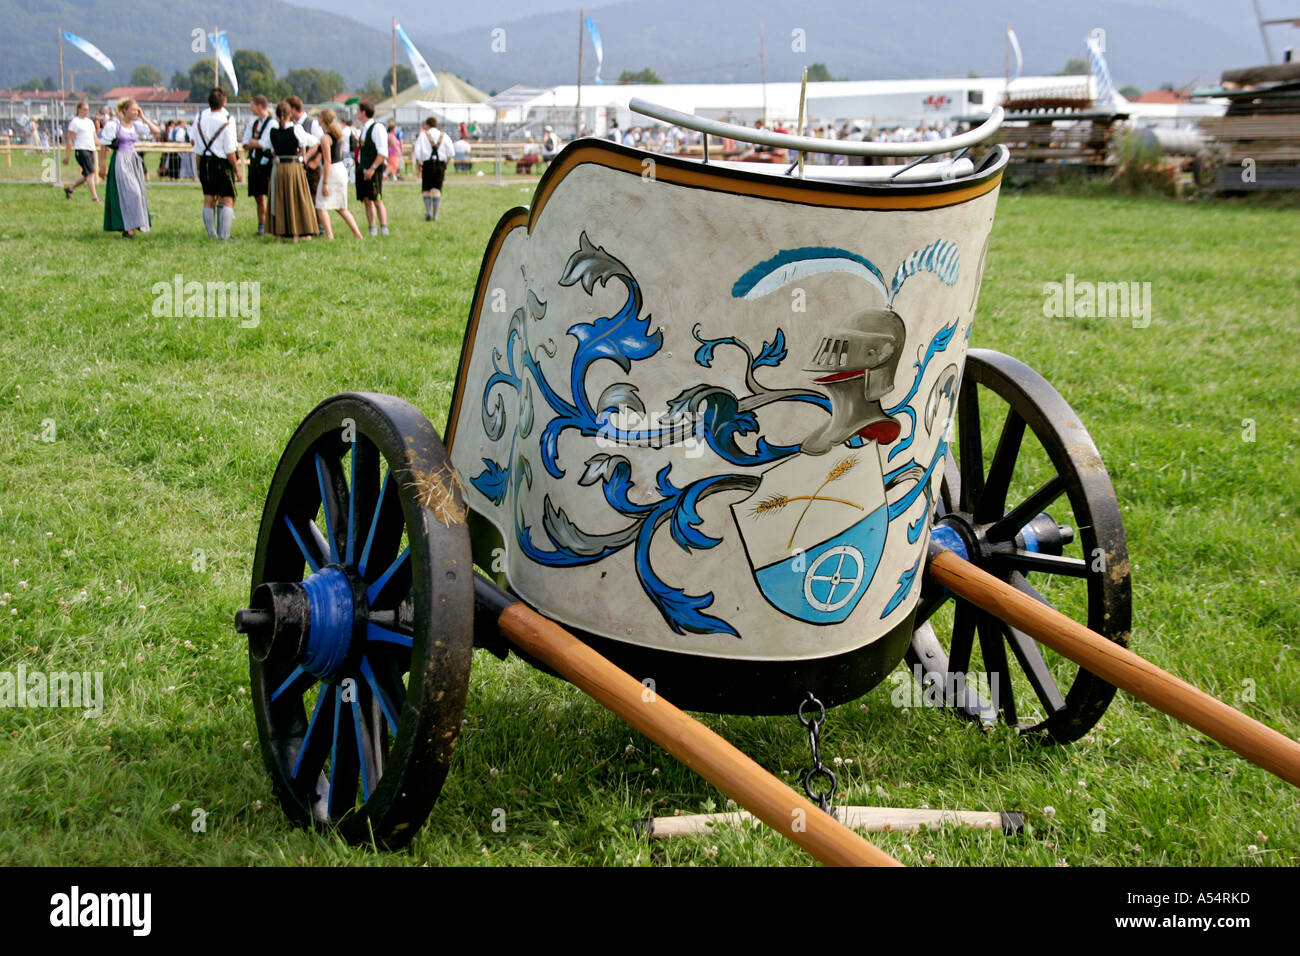 Roman chariot, imitation, First oxrace of Bichl, August 8th 2004, Upper Bavaria, Germany - Stock Image